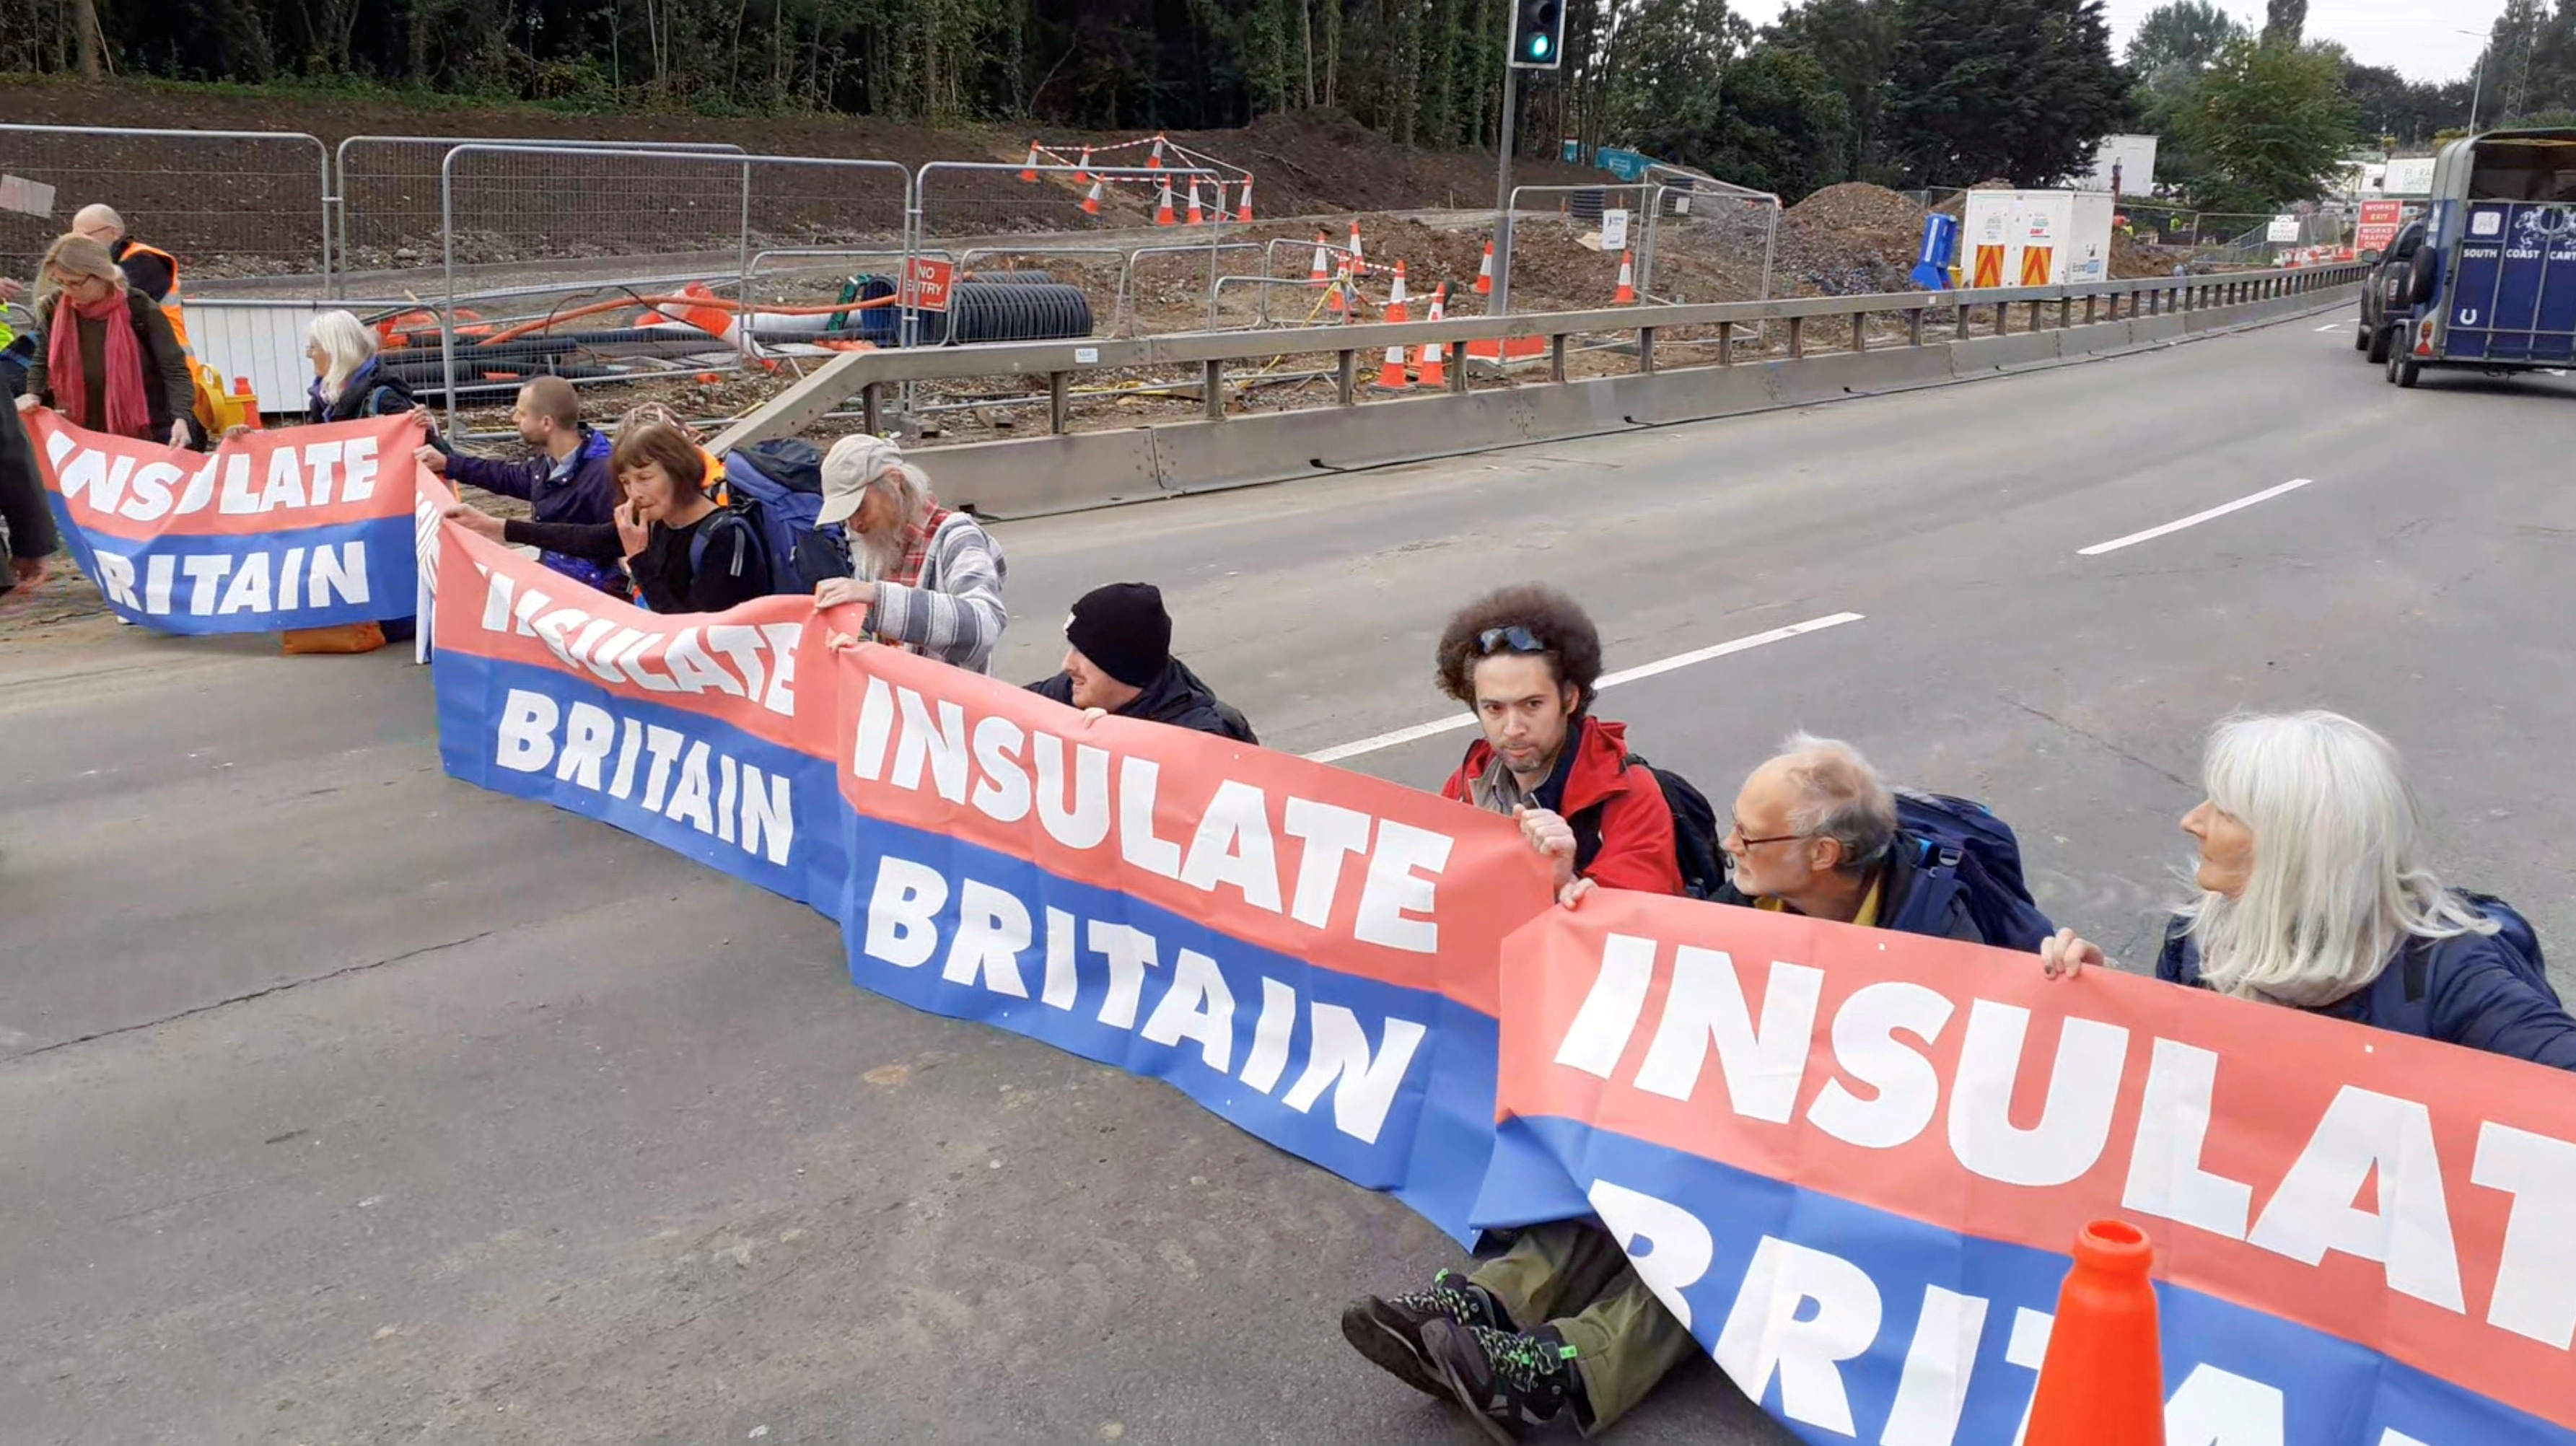 Members of Insulate Britain protest on M25 Motorway, Britain September 15, 2021, in this still image taken from a handout video. Insulate Britain/Handout via REUTERS